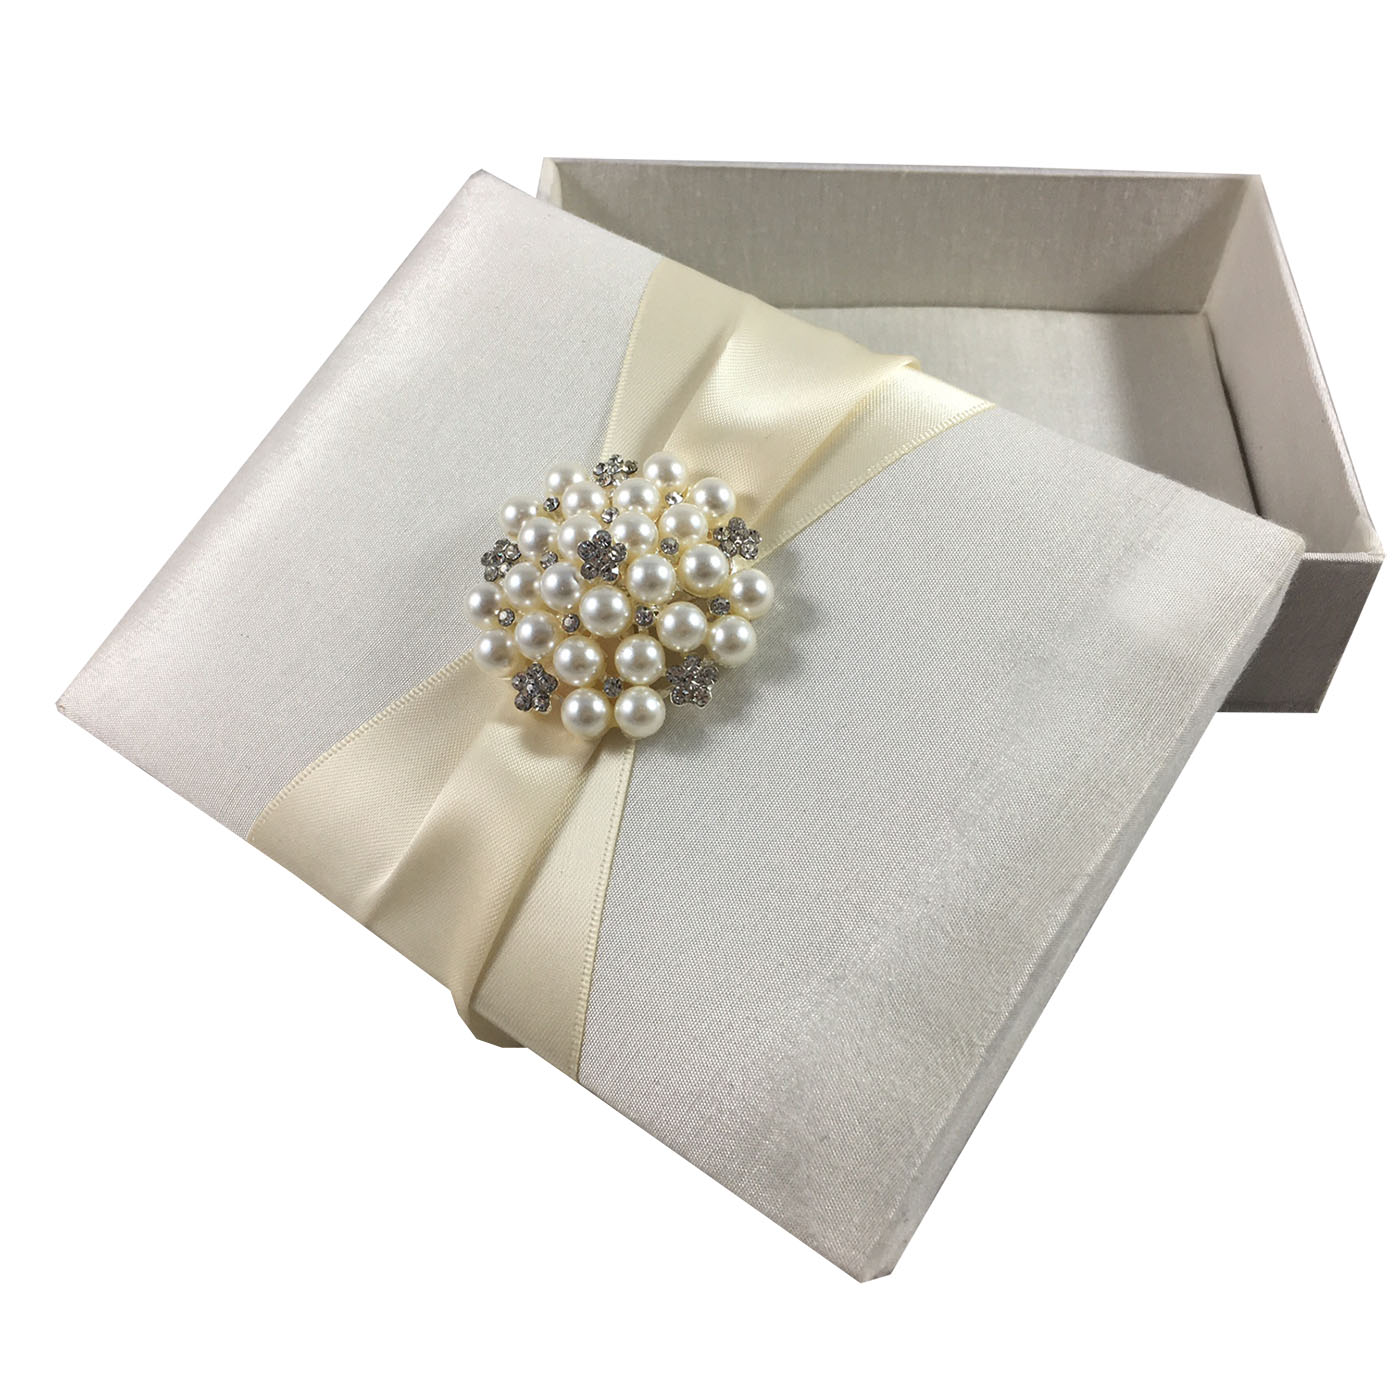 Beautiful Ivory Silk Gift Box With Large Pearl Brooch